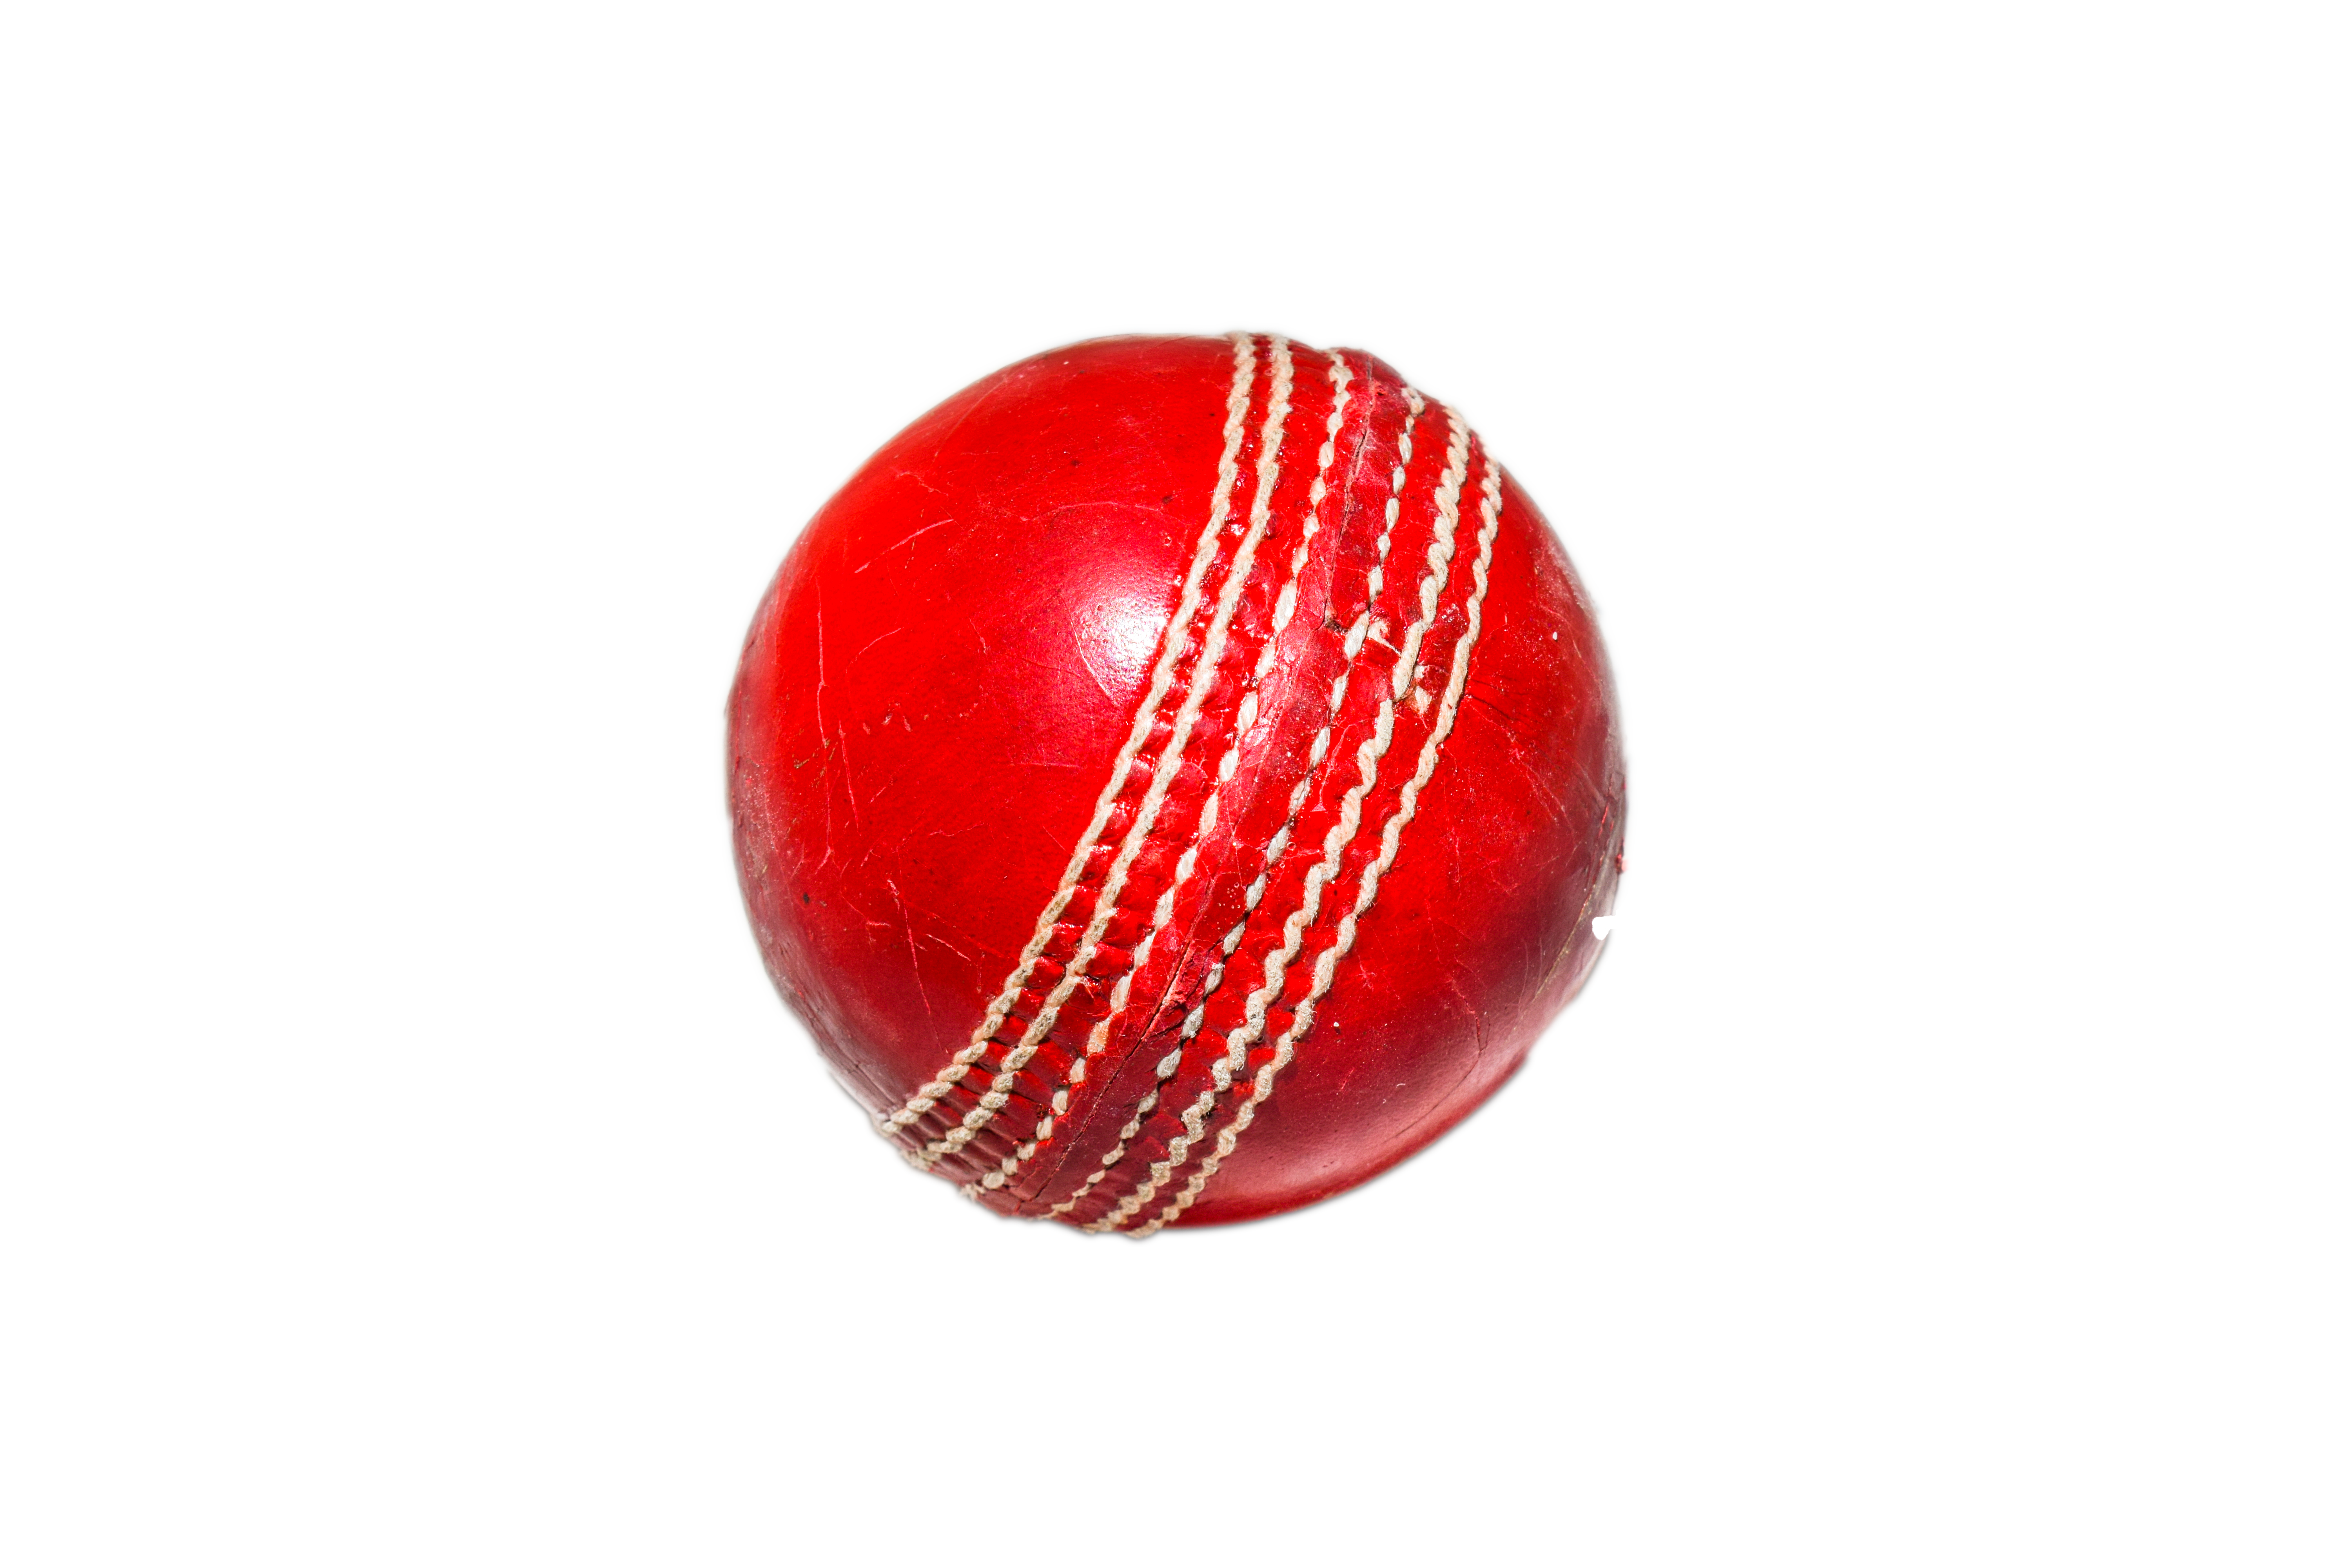 Cricket Ball Transparent Picture